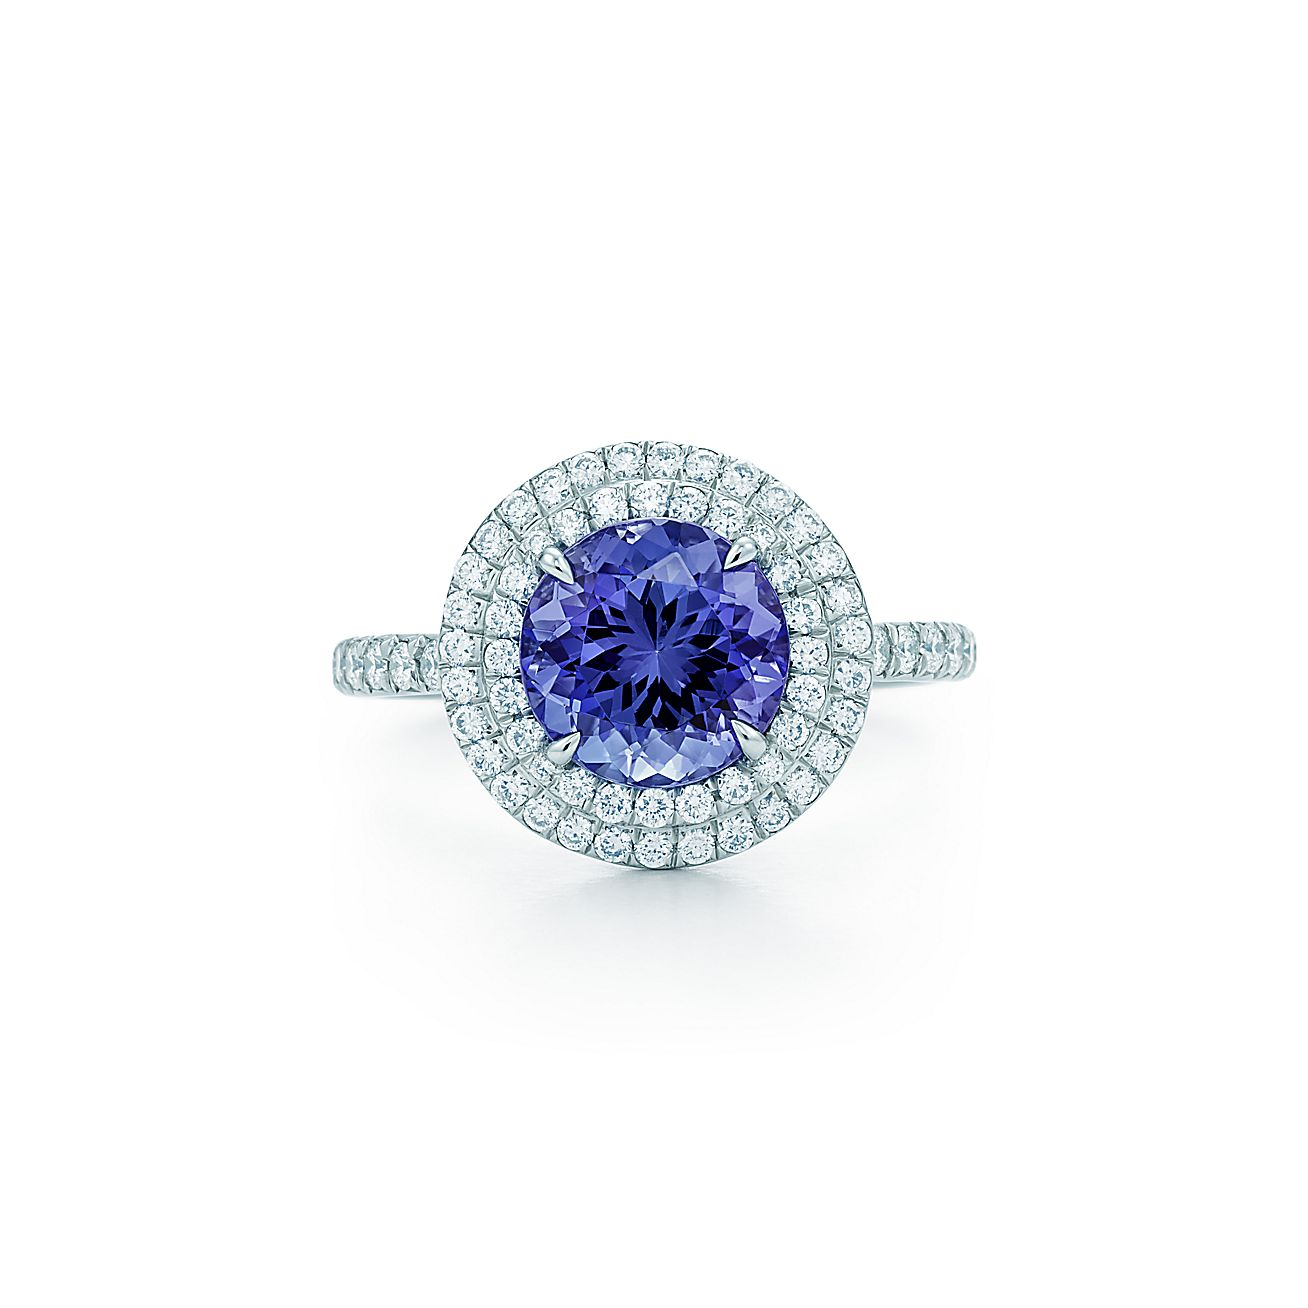 platinum an in tanzanite with tiffany hei constrain ring wid fit id diamonds m and ed soleste jewelry rings fmt aquamarine diamond